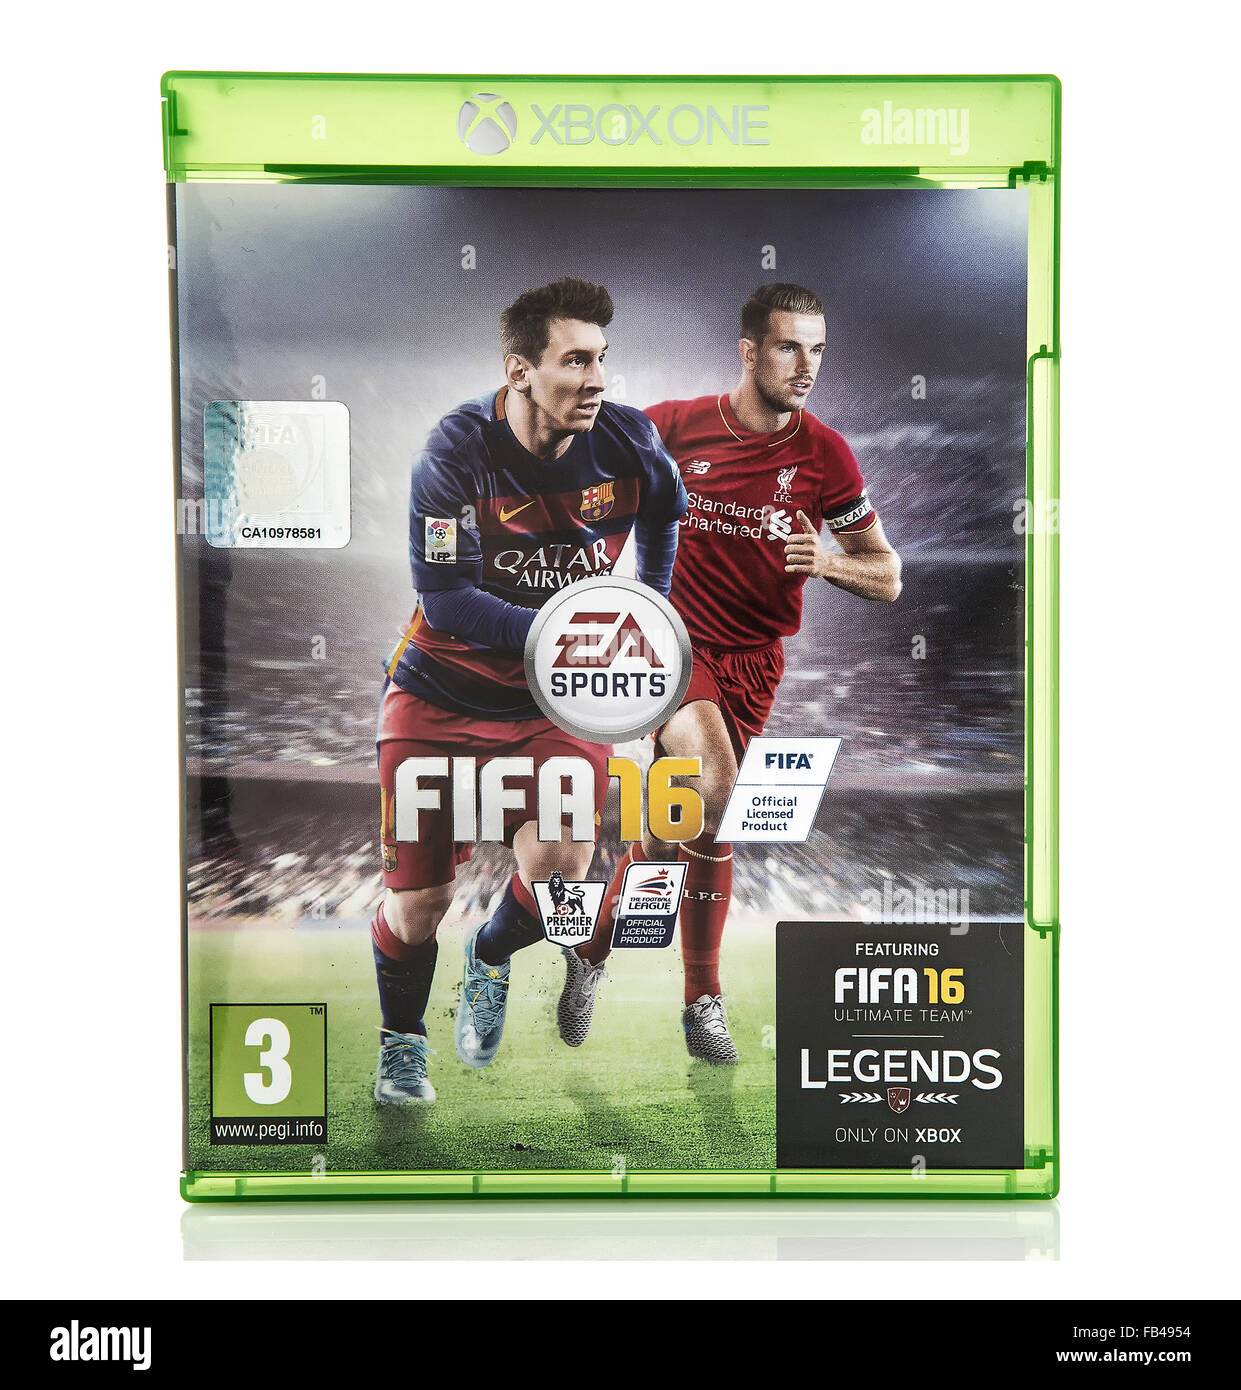 FIFA 2016 by EA Sports for the XBox One Console - Stock Image